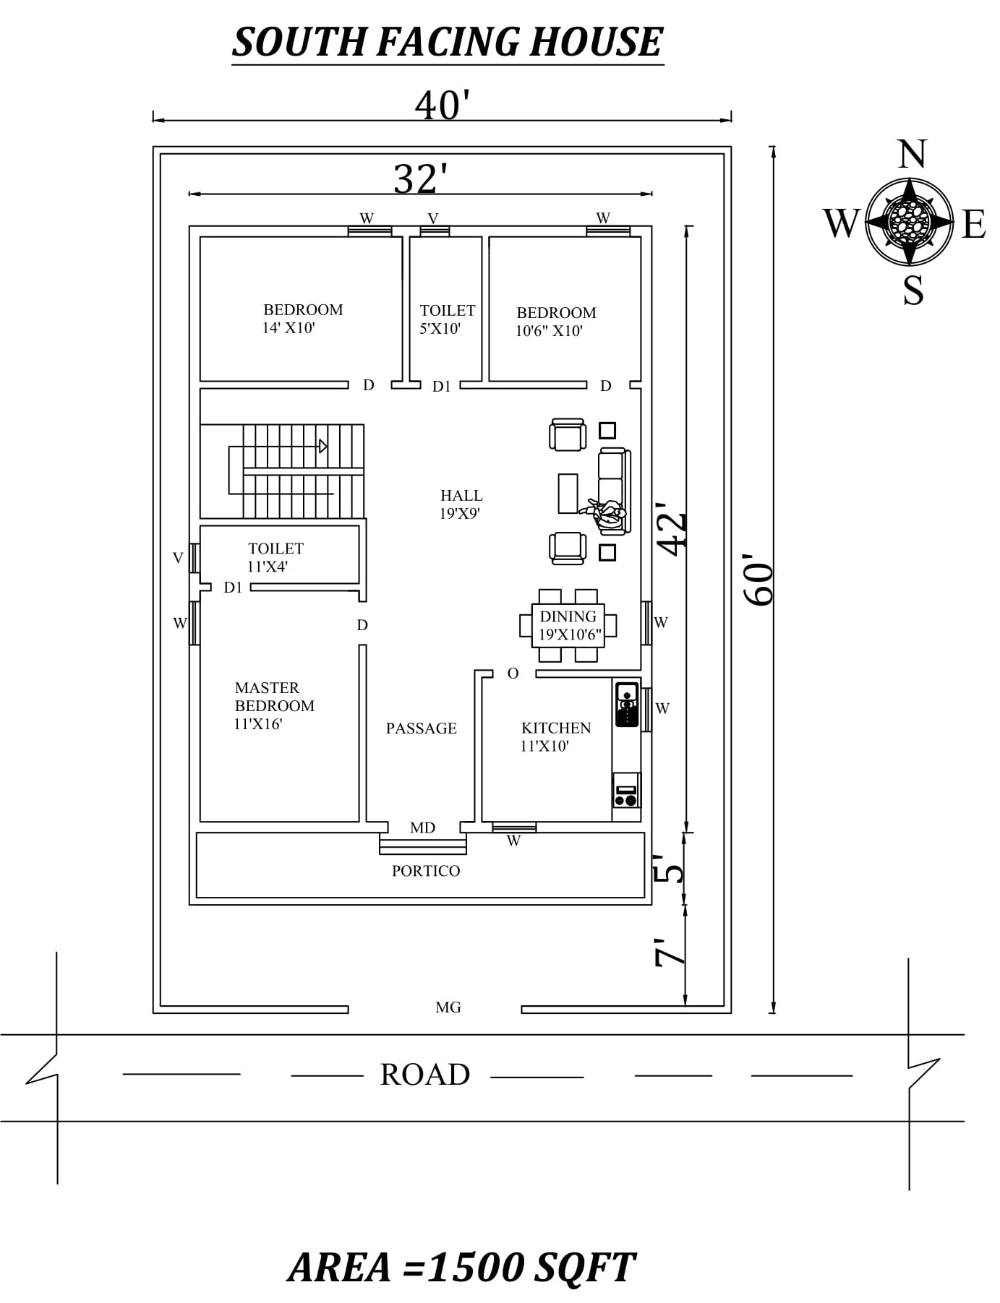 40 X60 3bhk South Facing House Plan As Per Vastu Shastra Autocad Dwg And Pdf File Details South Facing House Indian House Plans Modern House Floor Plans